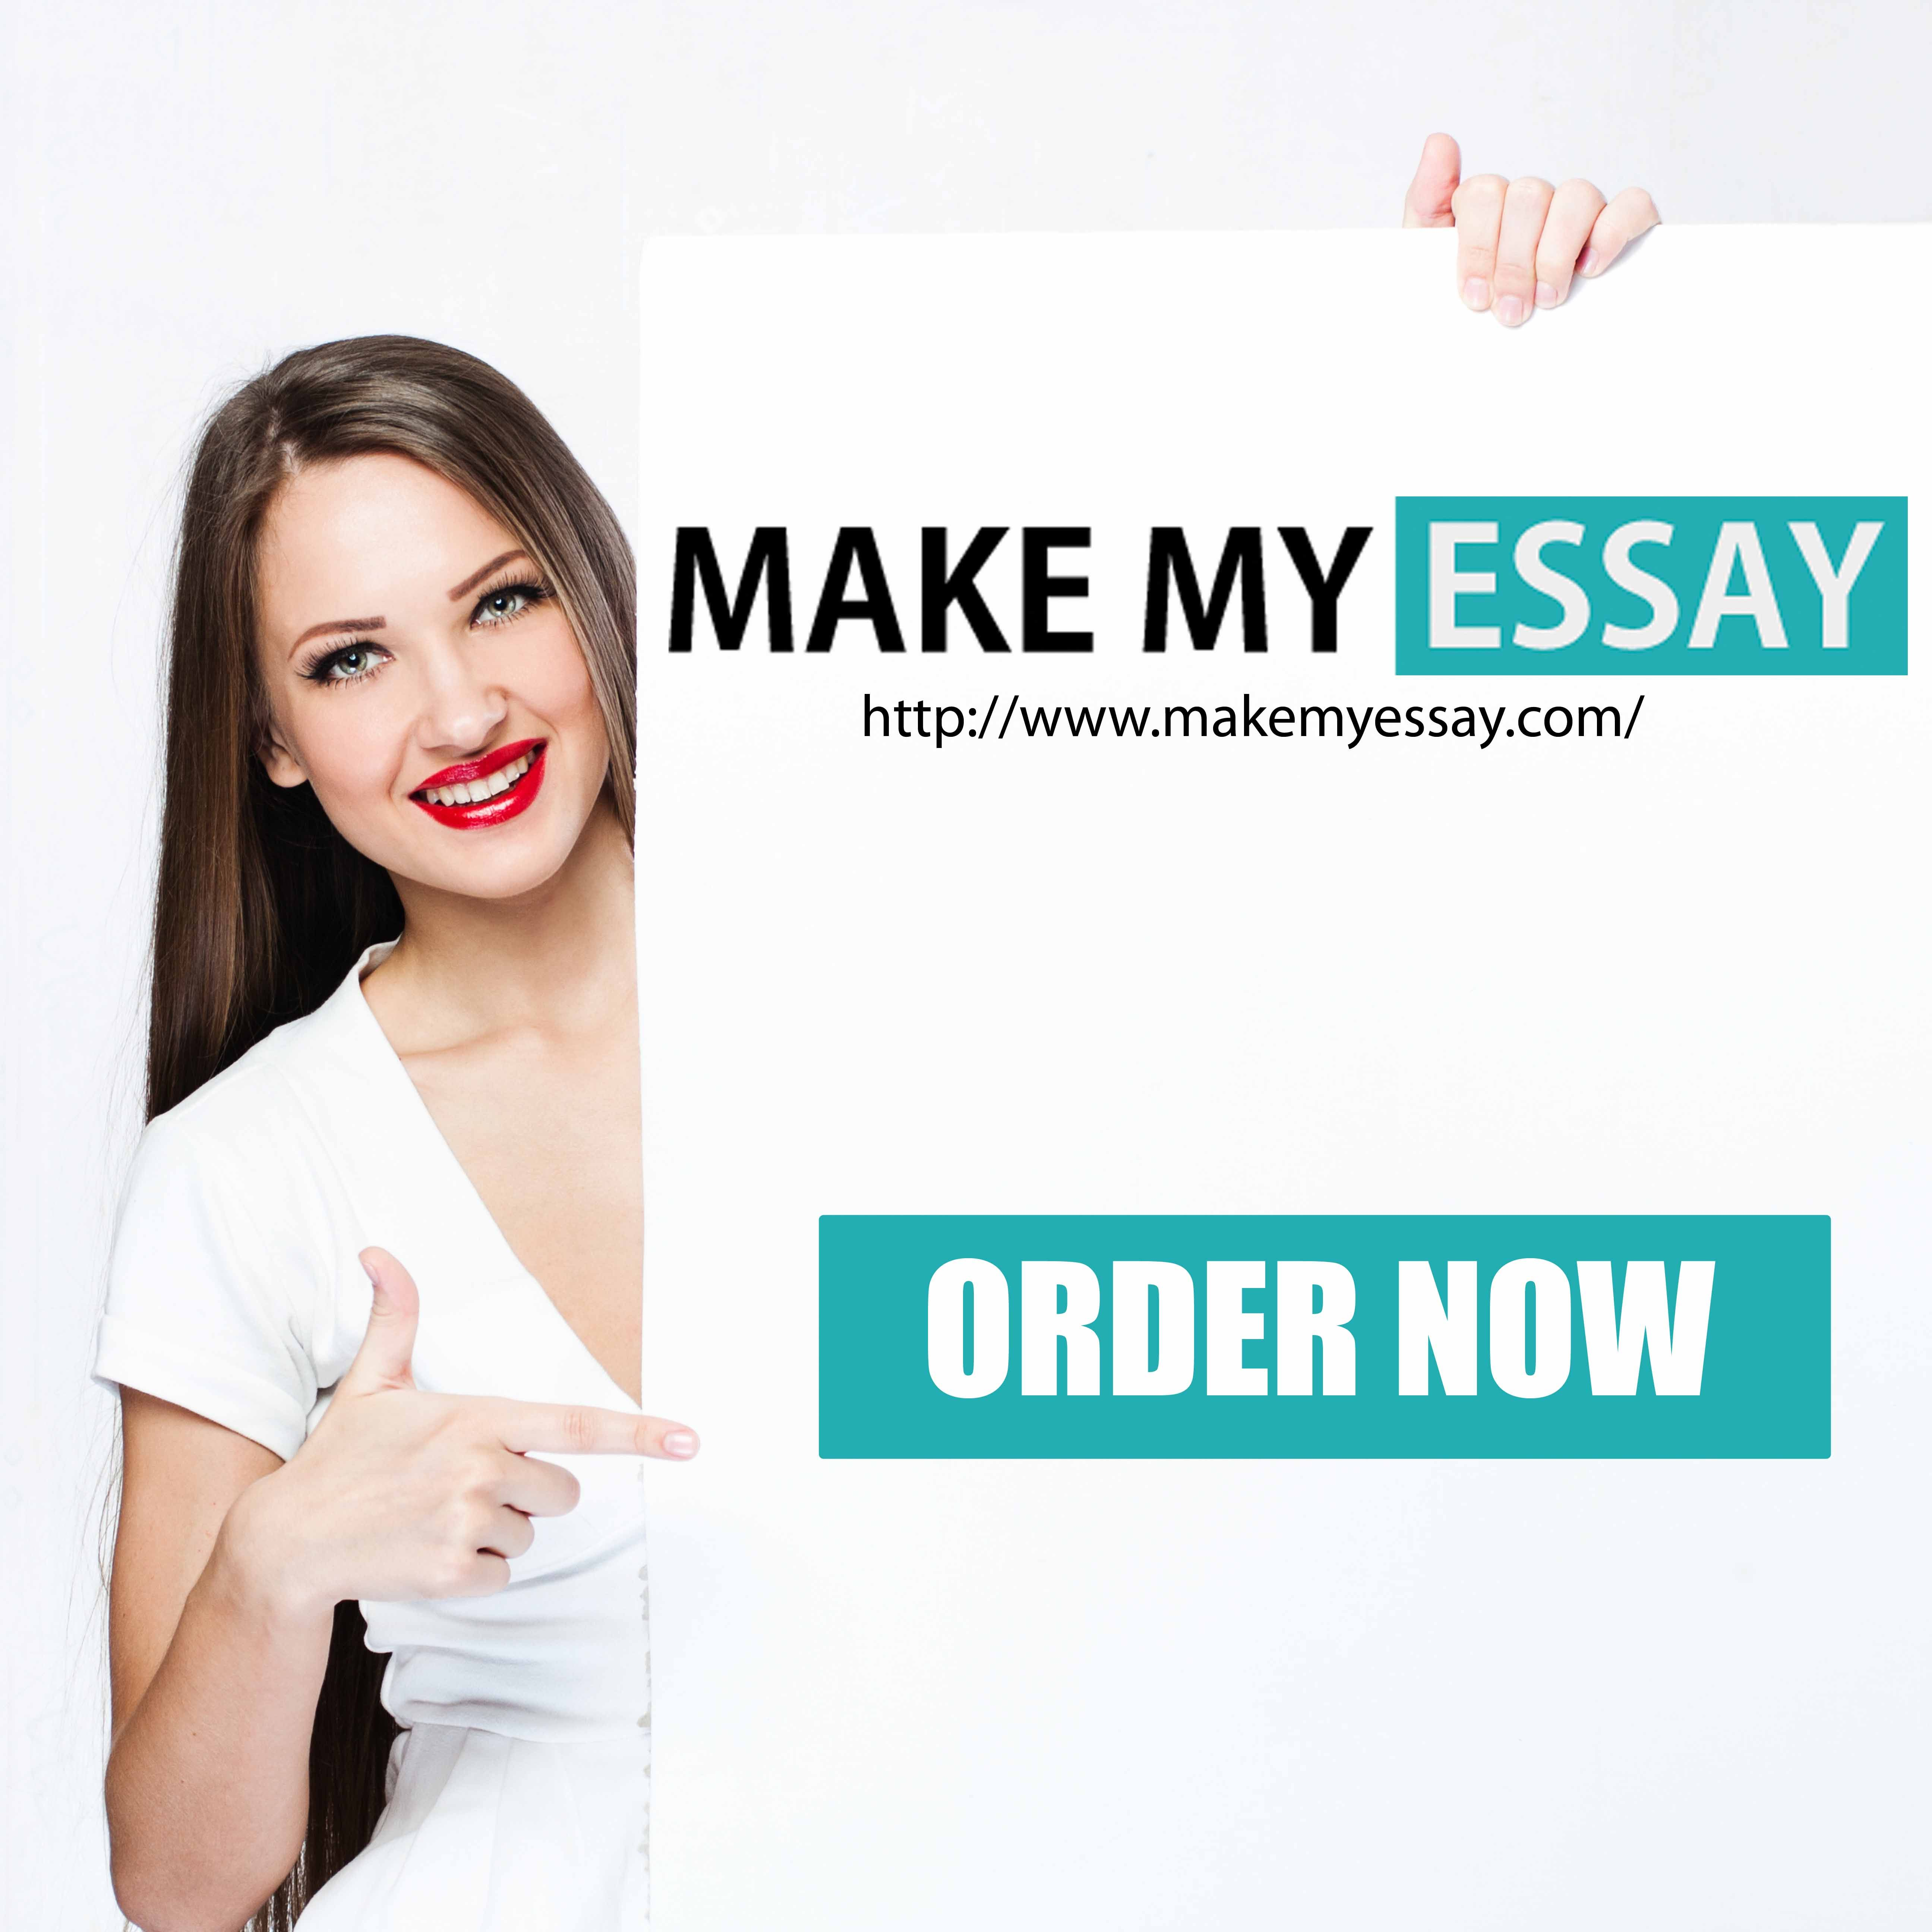 Term paper writing jobs